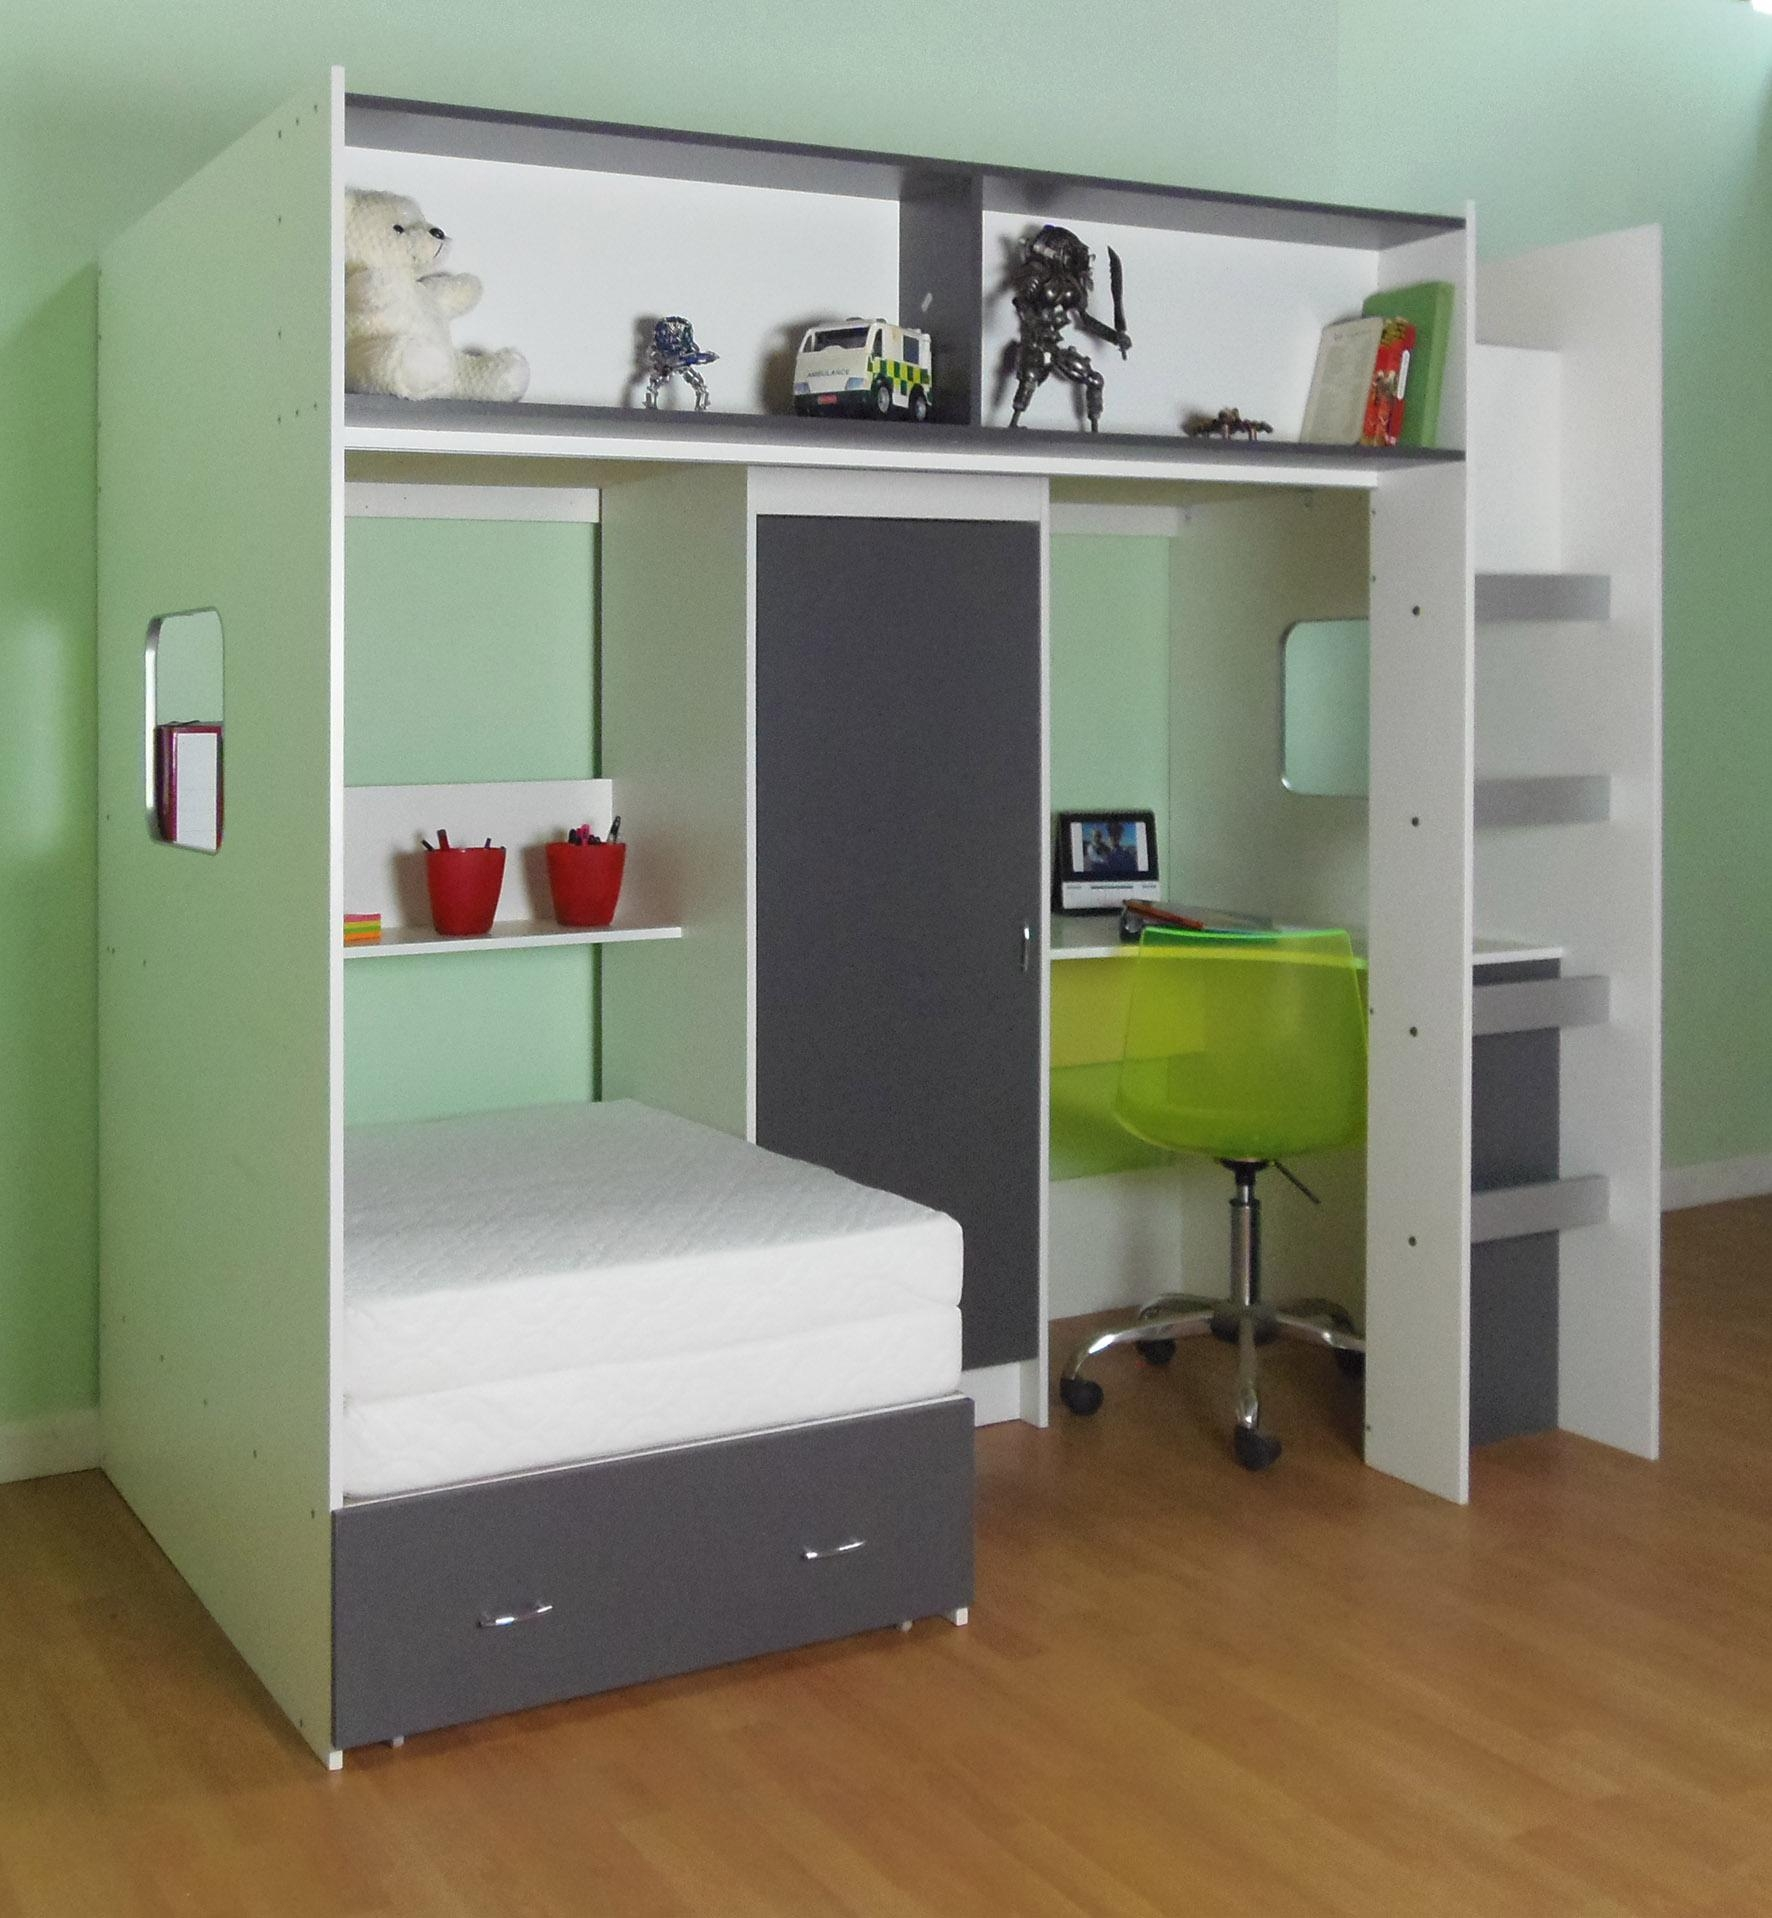 Elegant Green Bedroom Decor With Custom High Beds With Trundle Within High Sleeper With Sofa And Desk (Image 4 of 20)